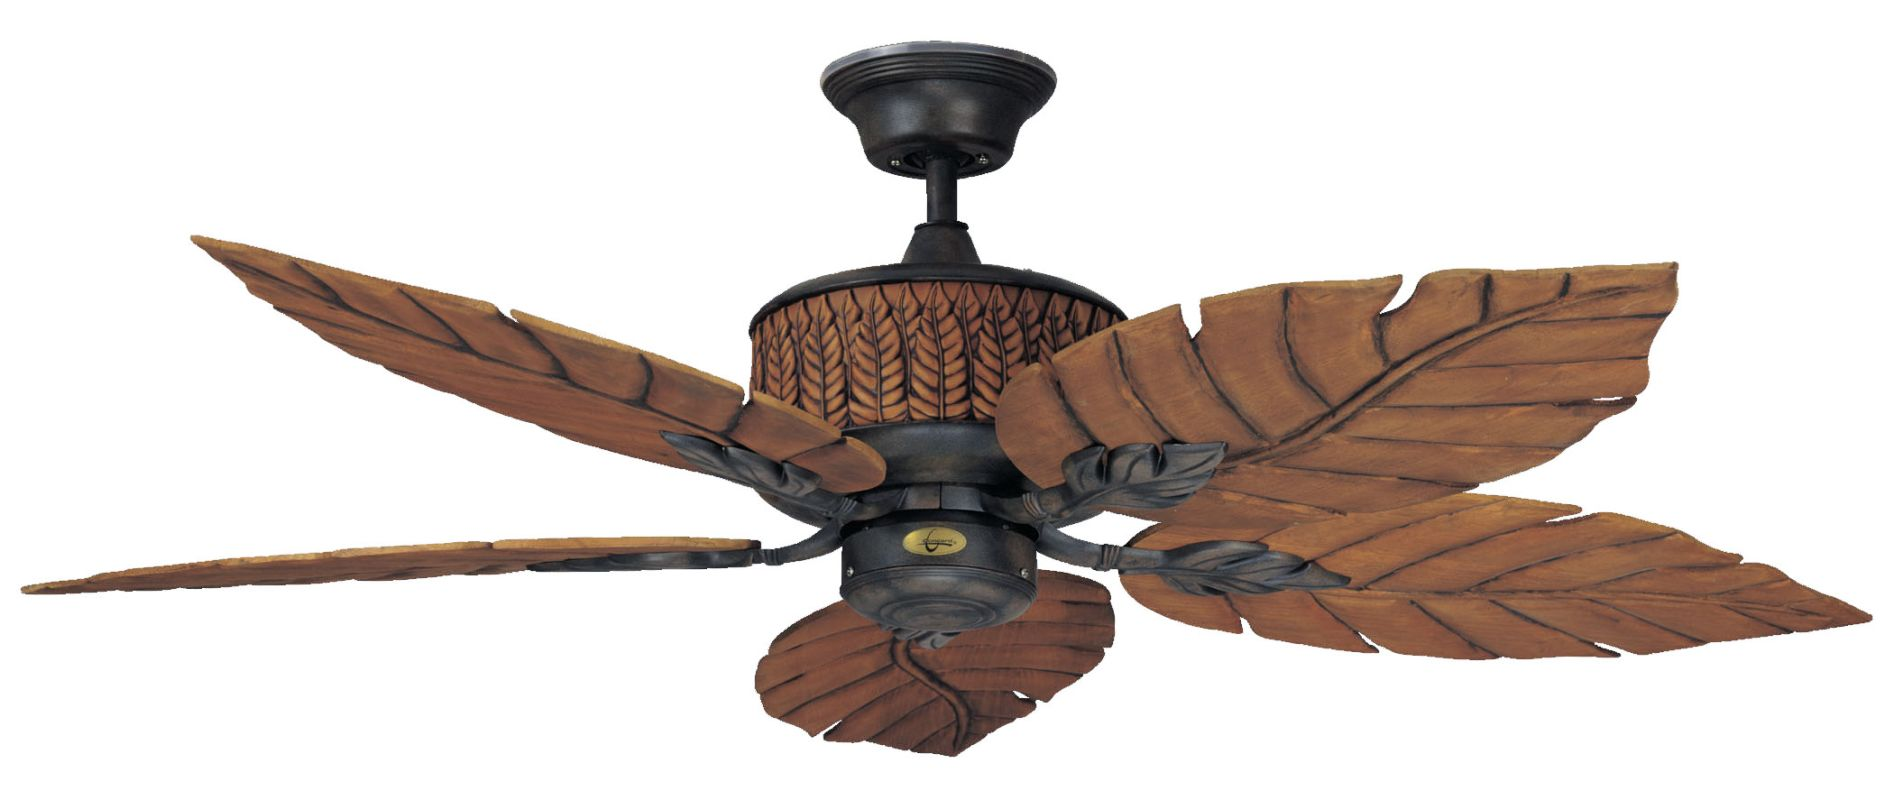 "Concord 52FEB5 Indoor/Outdoor 5 Blade 52"" Ceiling Fan - Blades and"